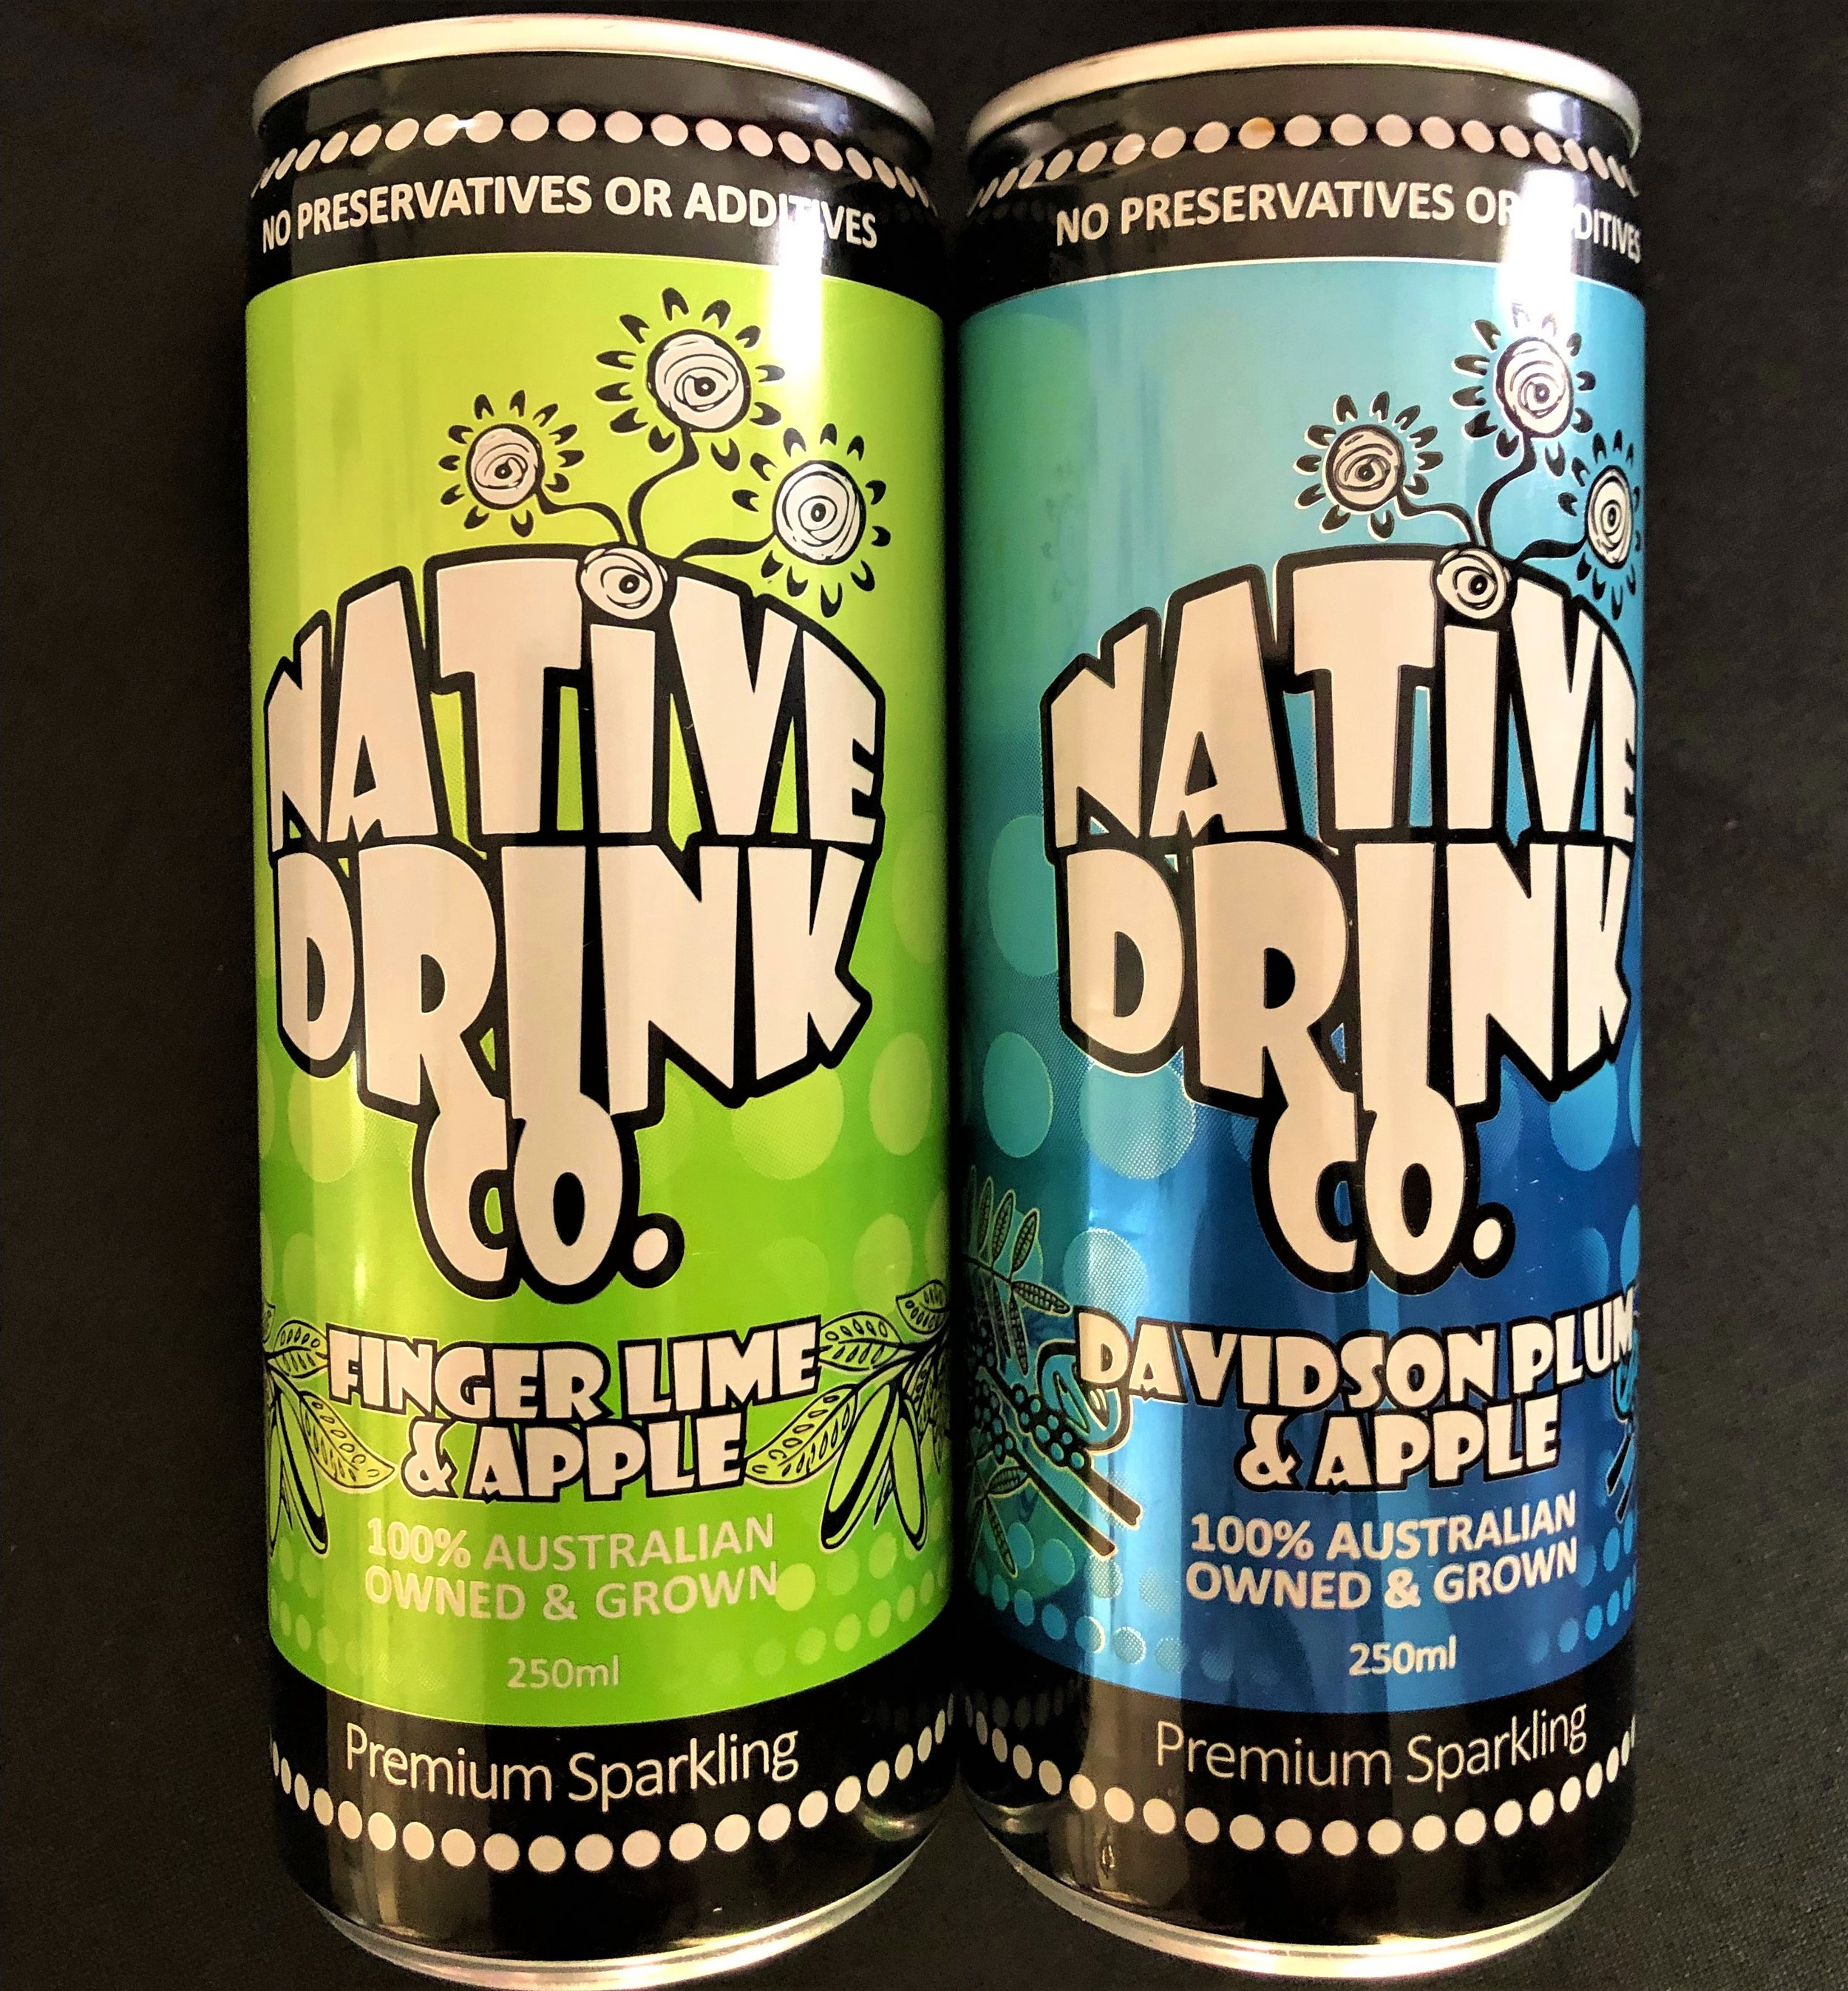 Sparkling Native Fruit Drinks - 2 premium Australian flavours - Finger Lime with Apple and Davidson Plum with Apple